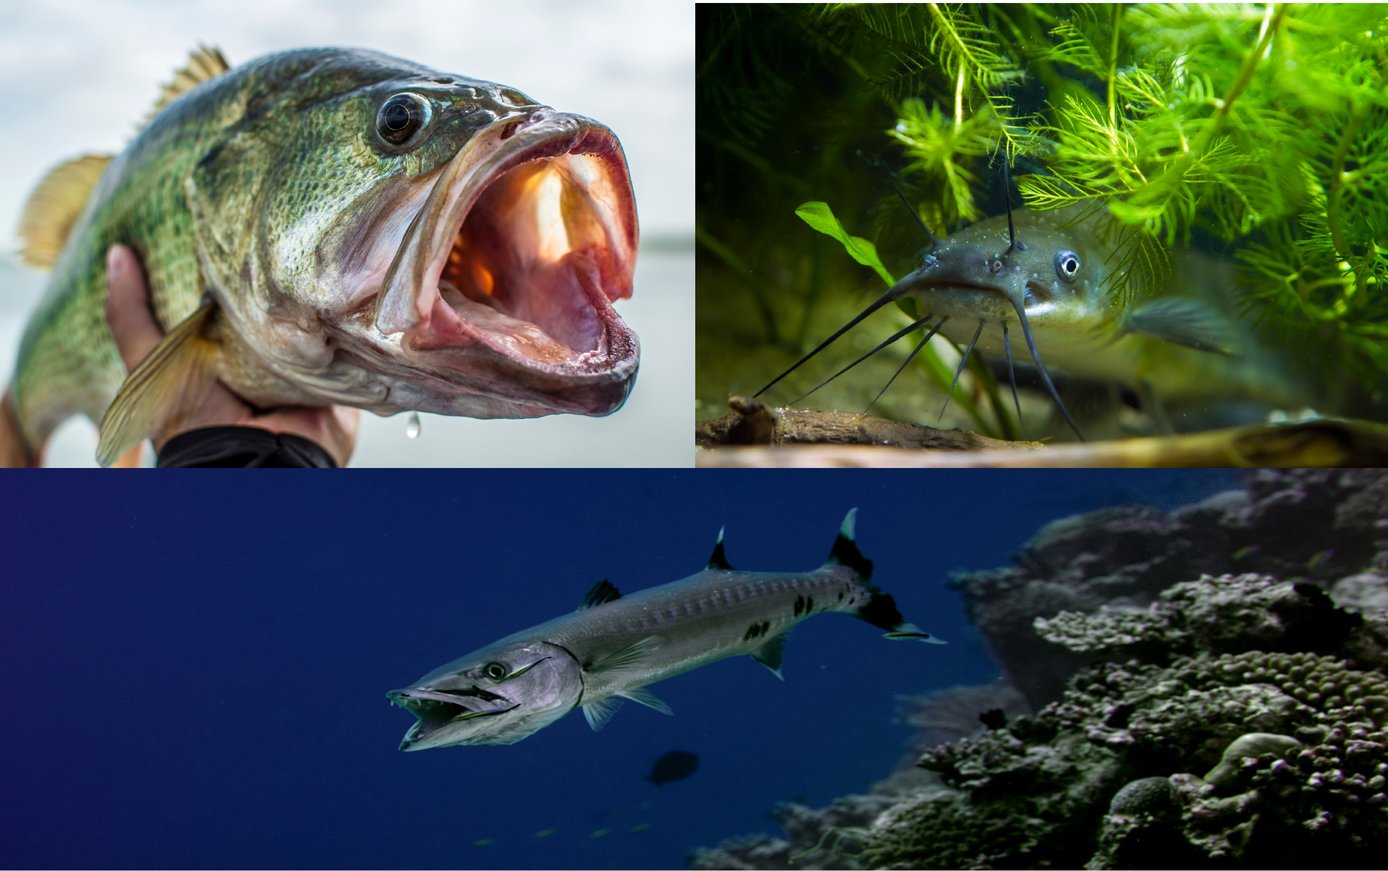 an image showing largemouth bass, a catfish, and a barracuda. The three fish represent the three different types of fish mouths - superior, inferior, terminal